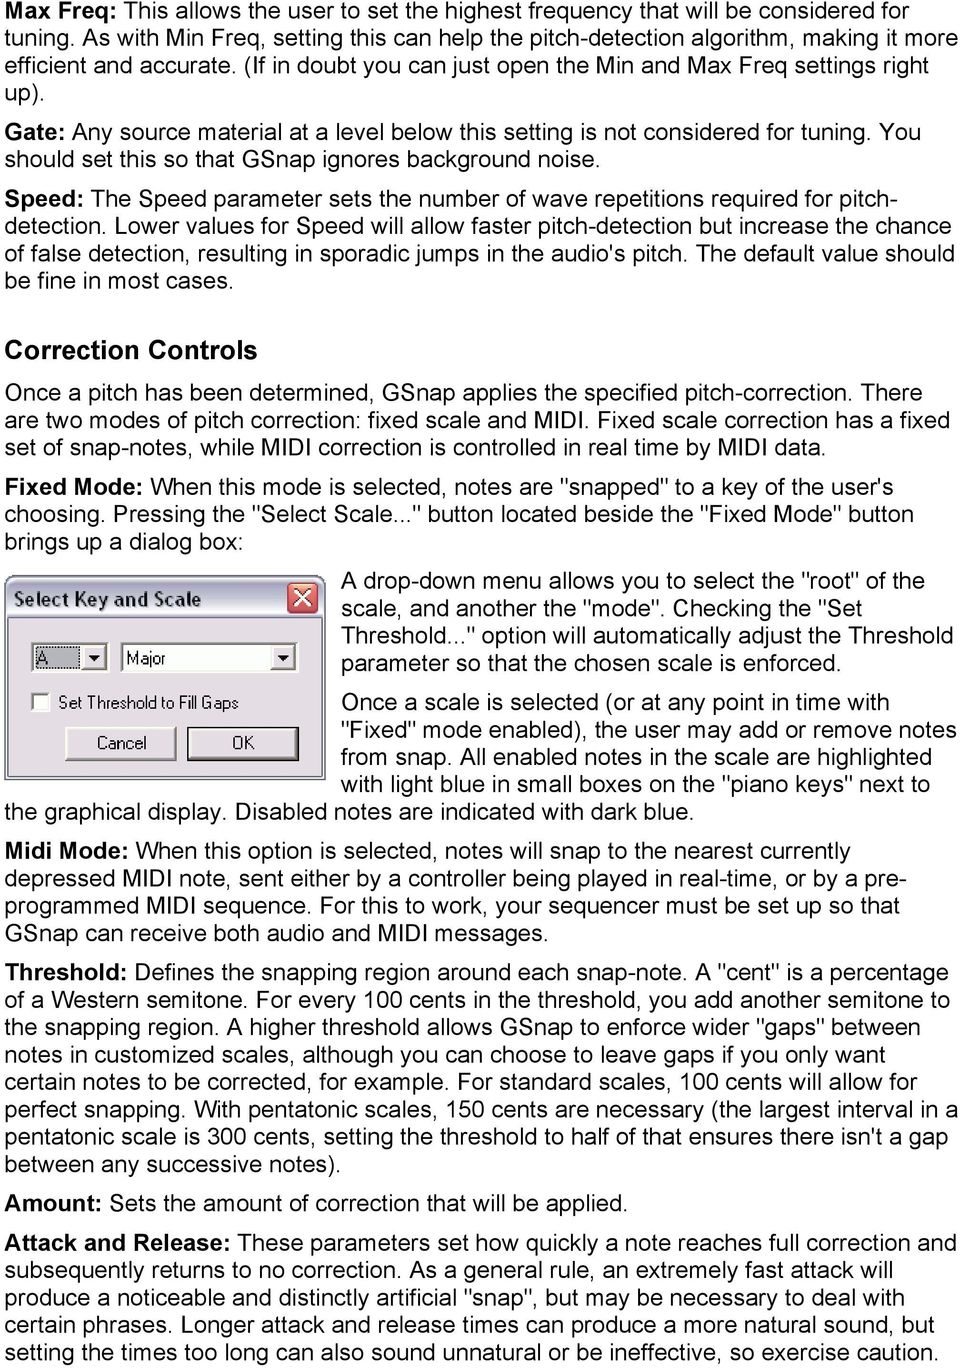 GSnap Manual  Welcome to GSnap  Installation  Hints - PDF